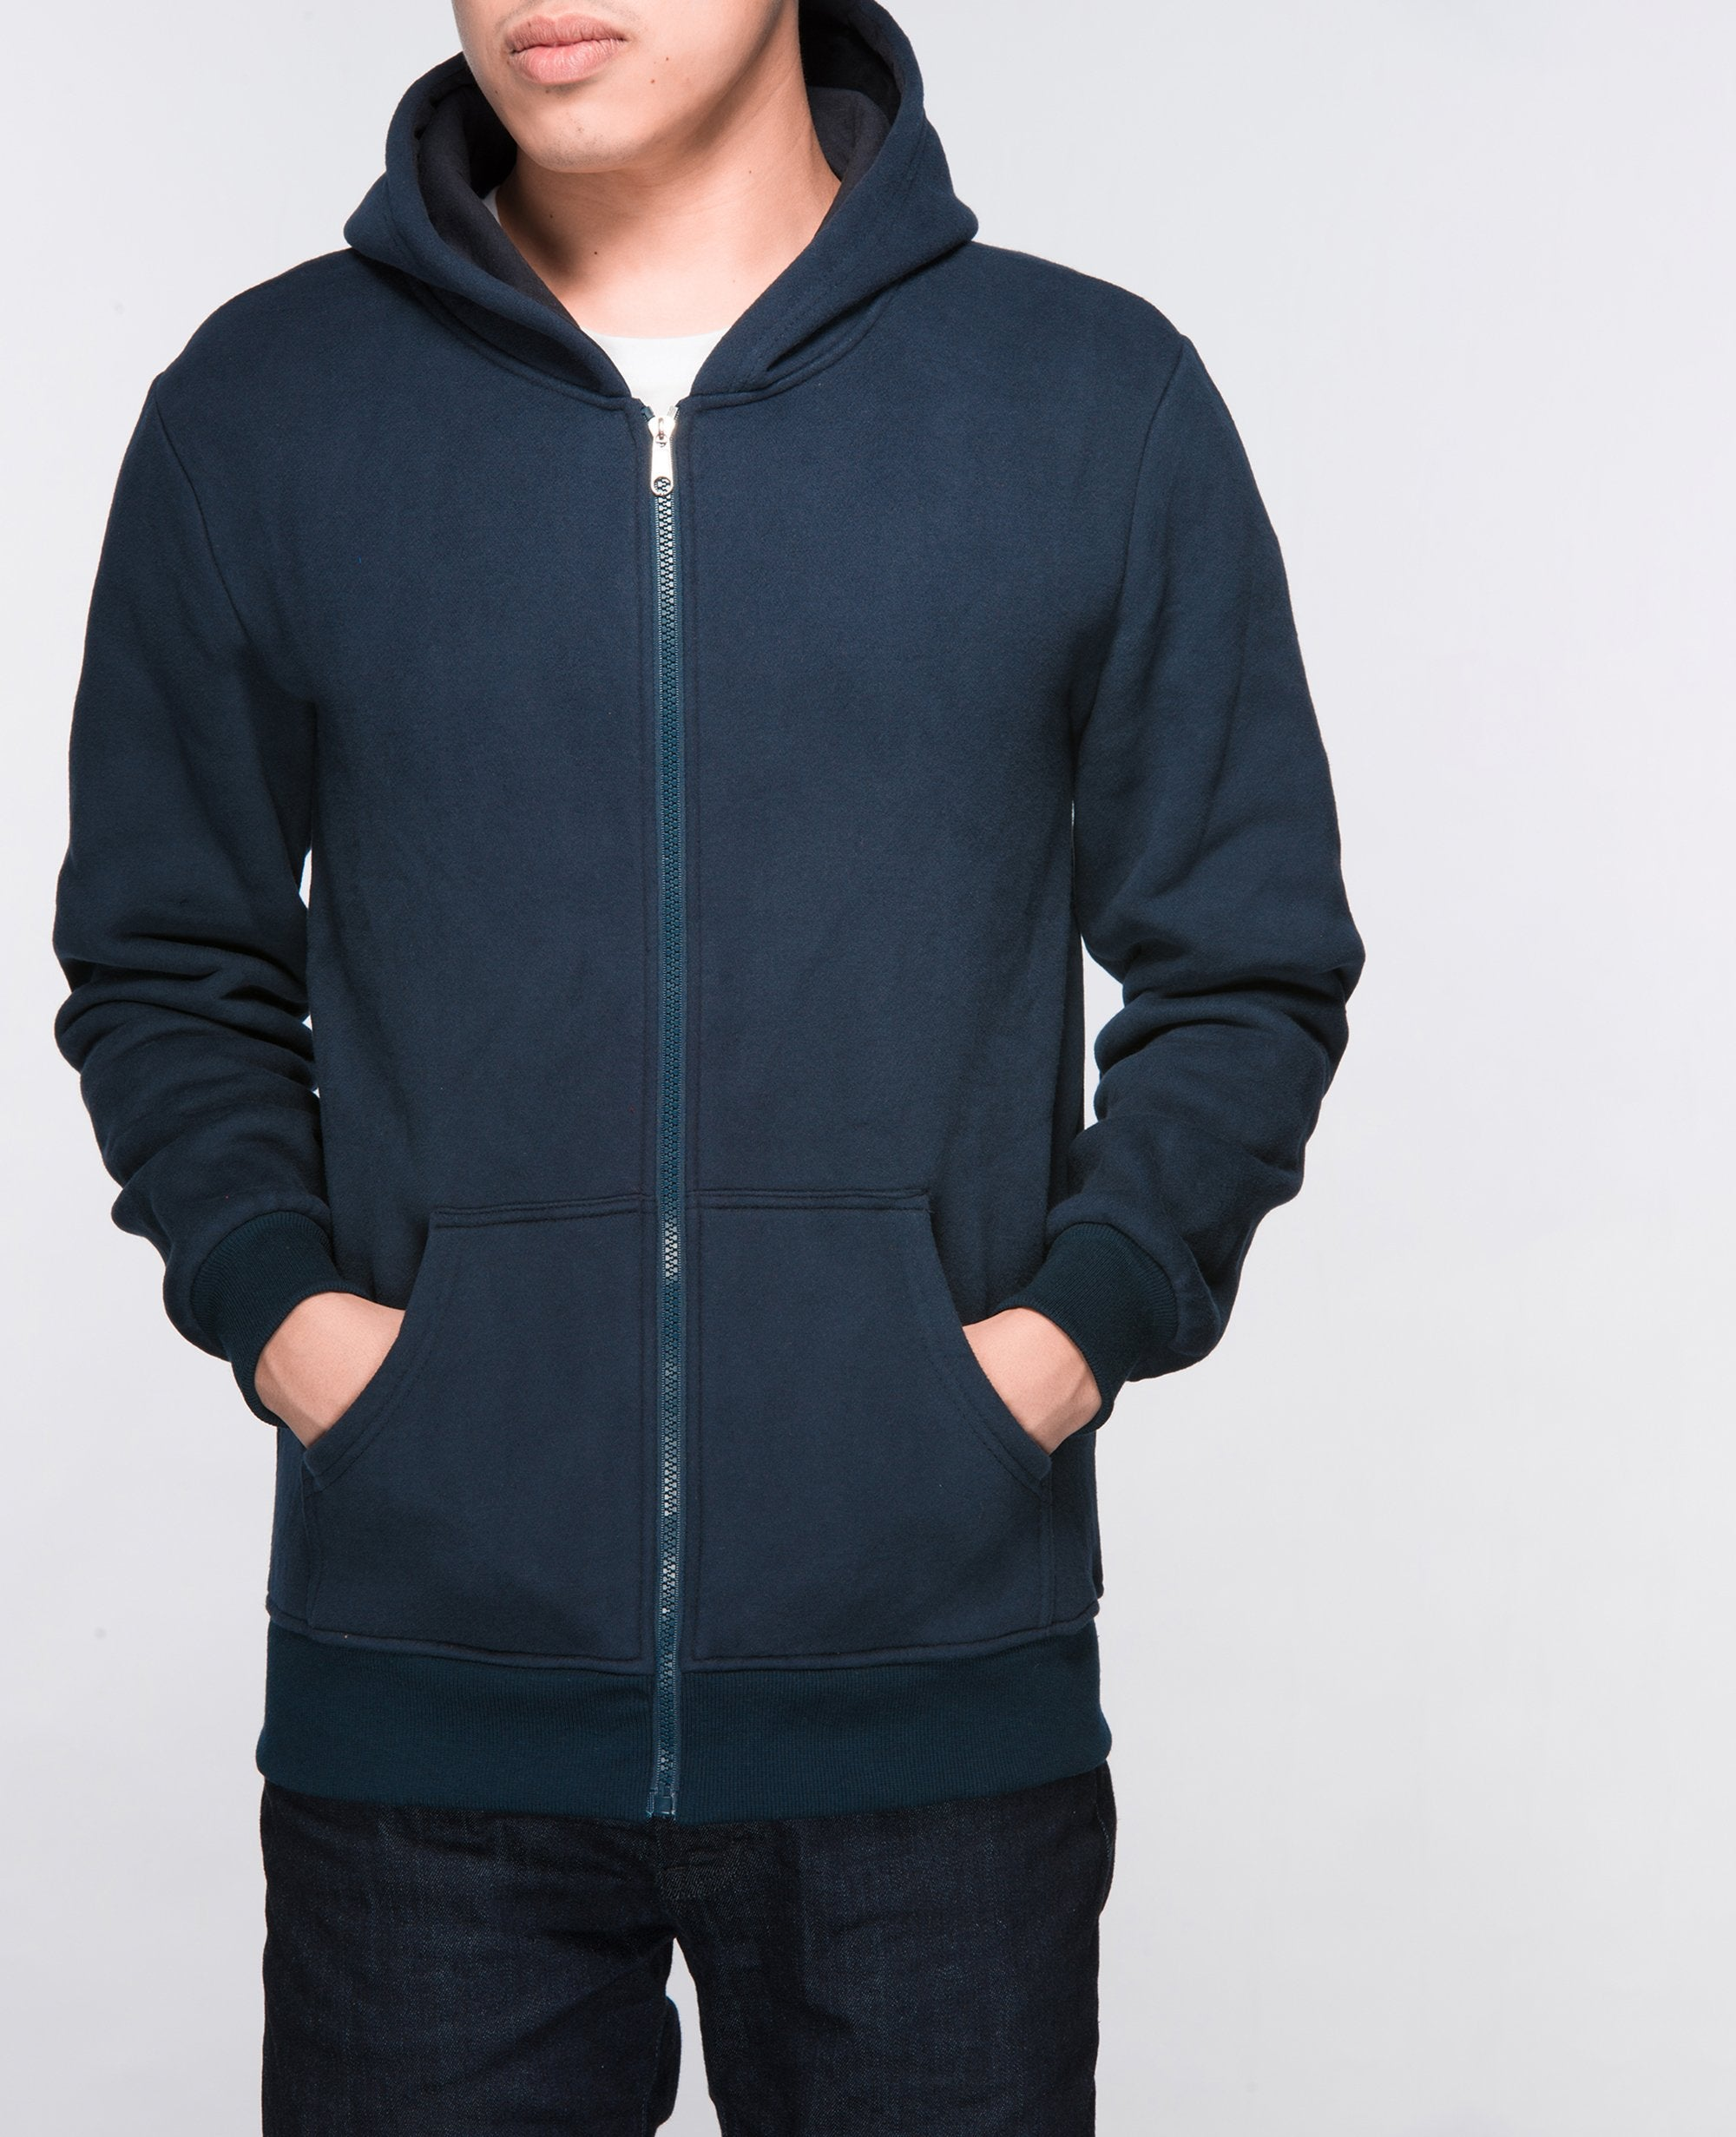 Unisex Basic Hoodies in Navy - Hoodies - BRANMA - BRANMA